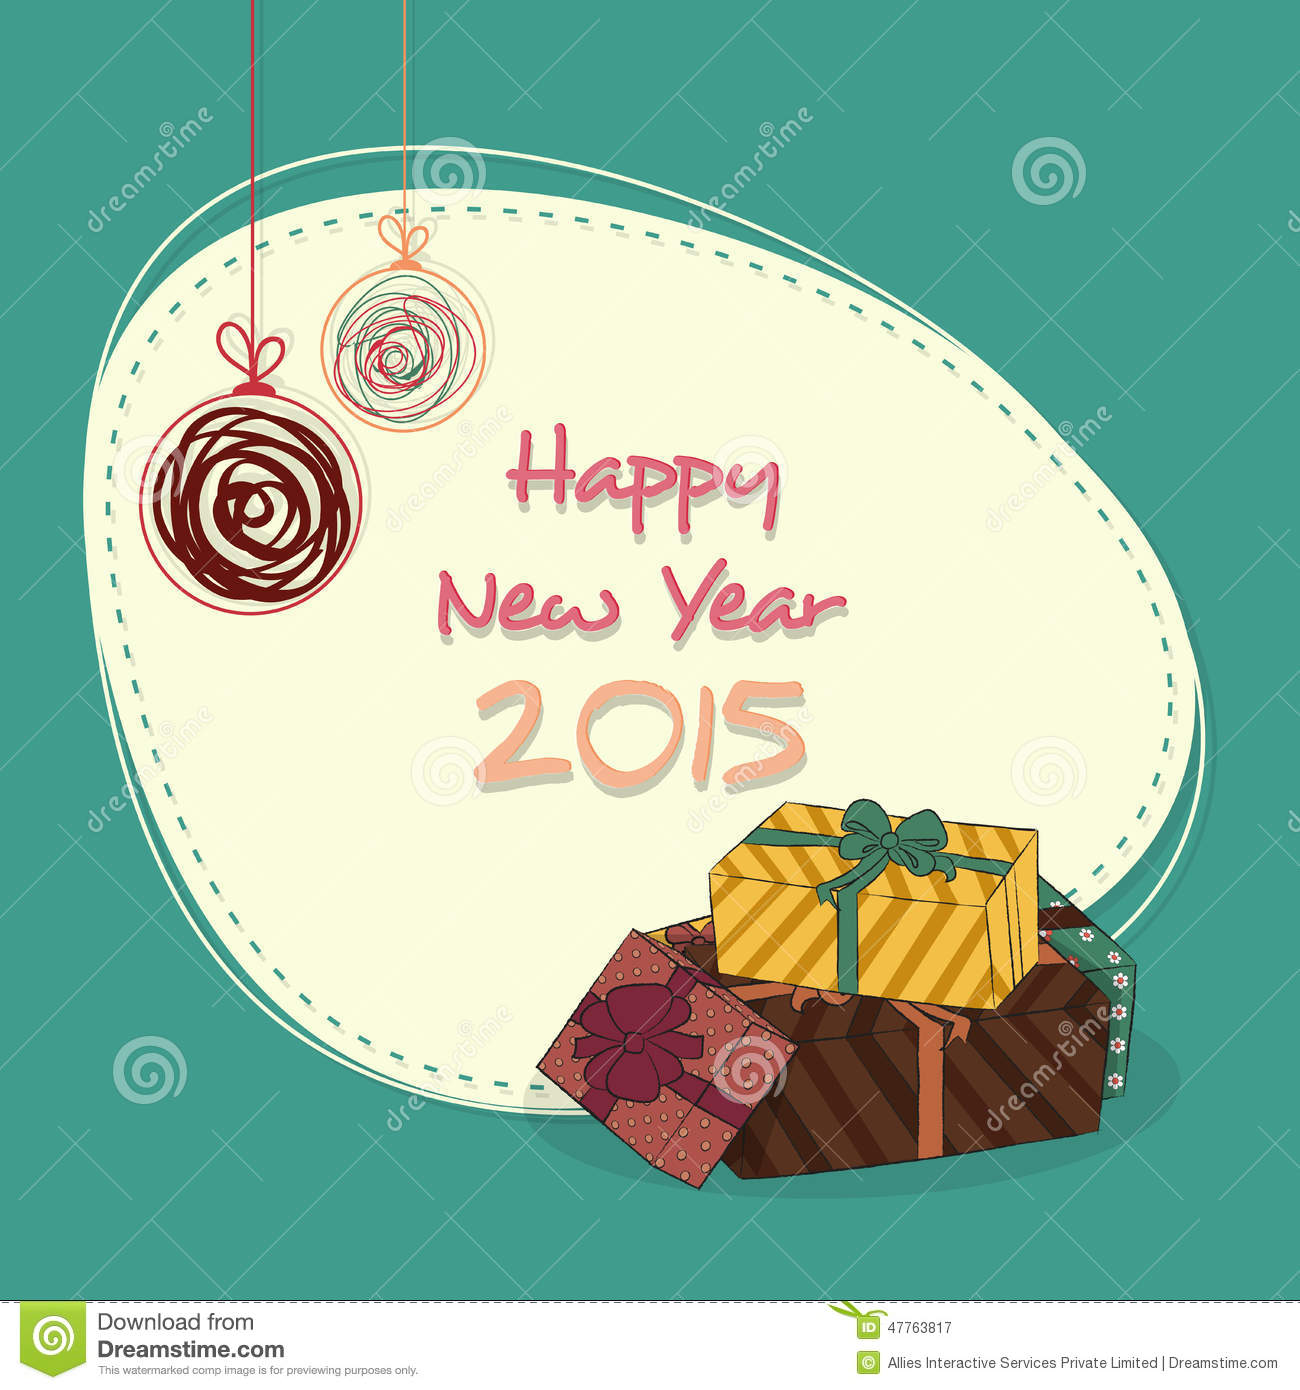 sticker tag or label for happy new year 2015